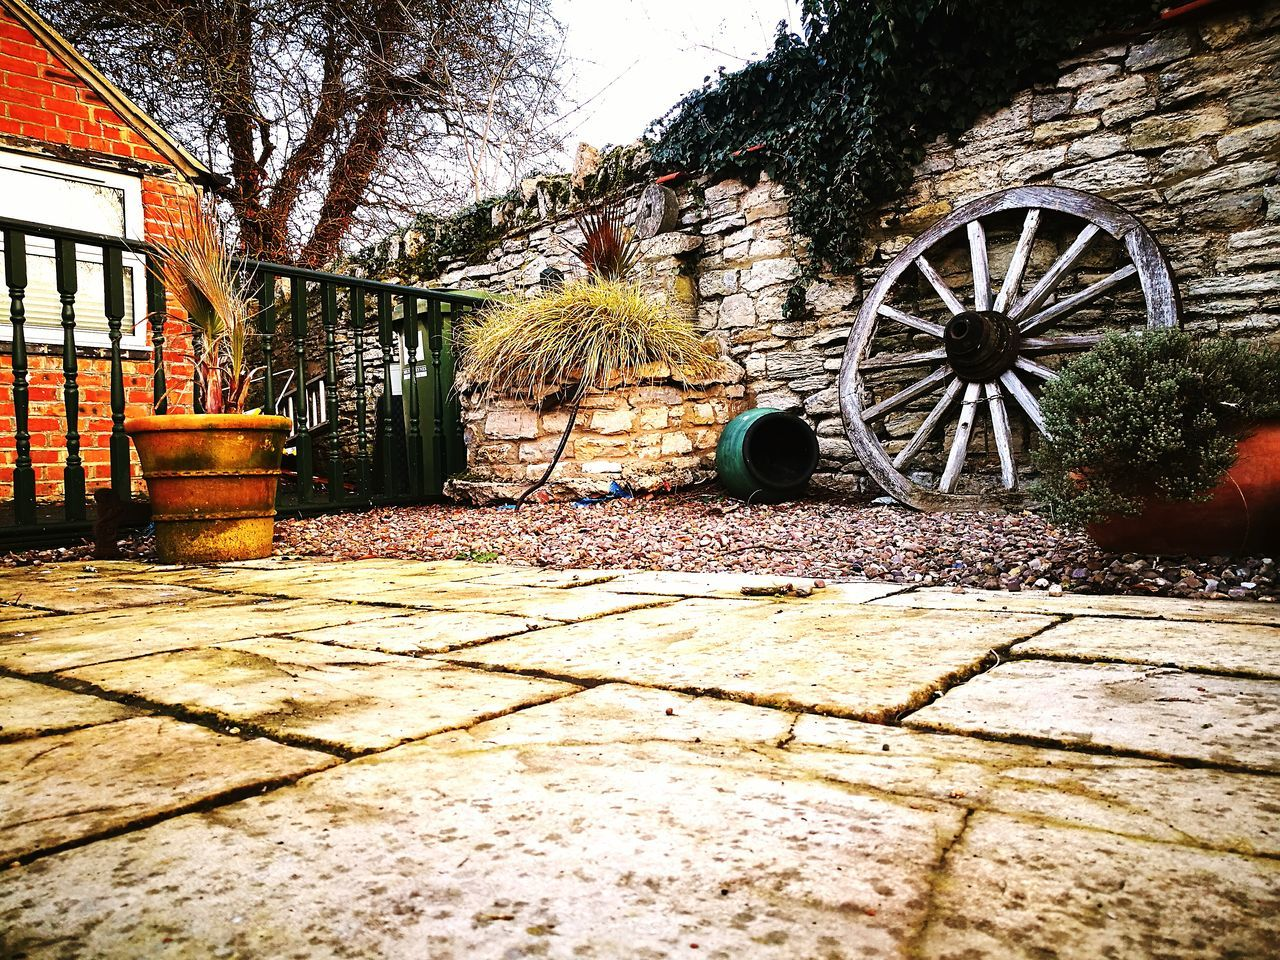 Boat Wheel Ship Wheel Plant Pot Tree Porch Cottage Village Randomshot Art In Everything Beautiful Photography No People Check This Out Popular Photos